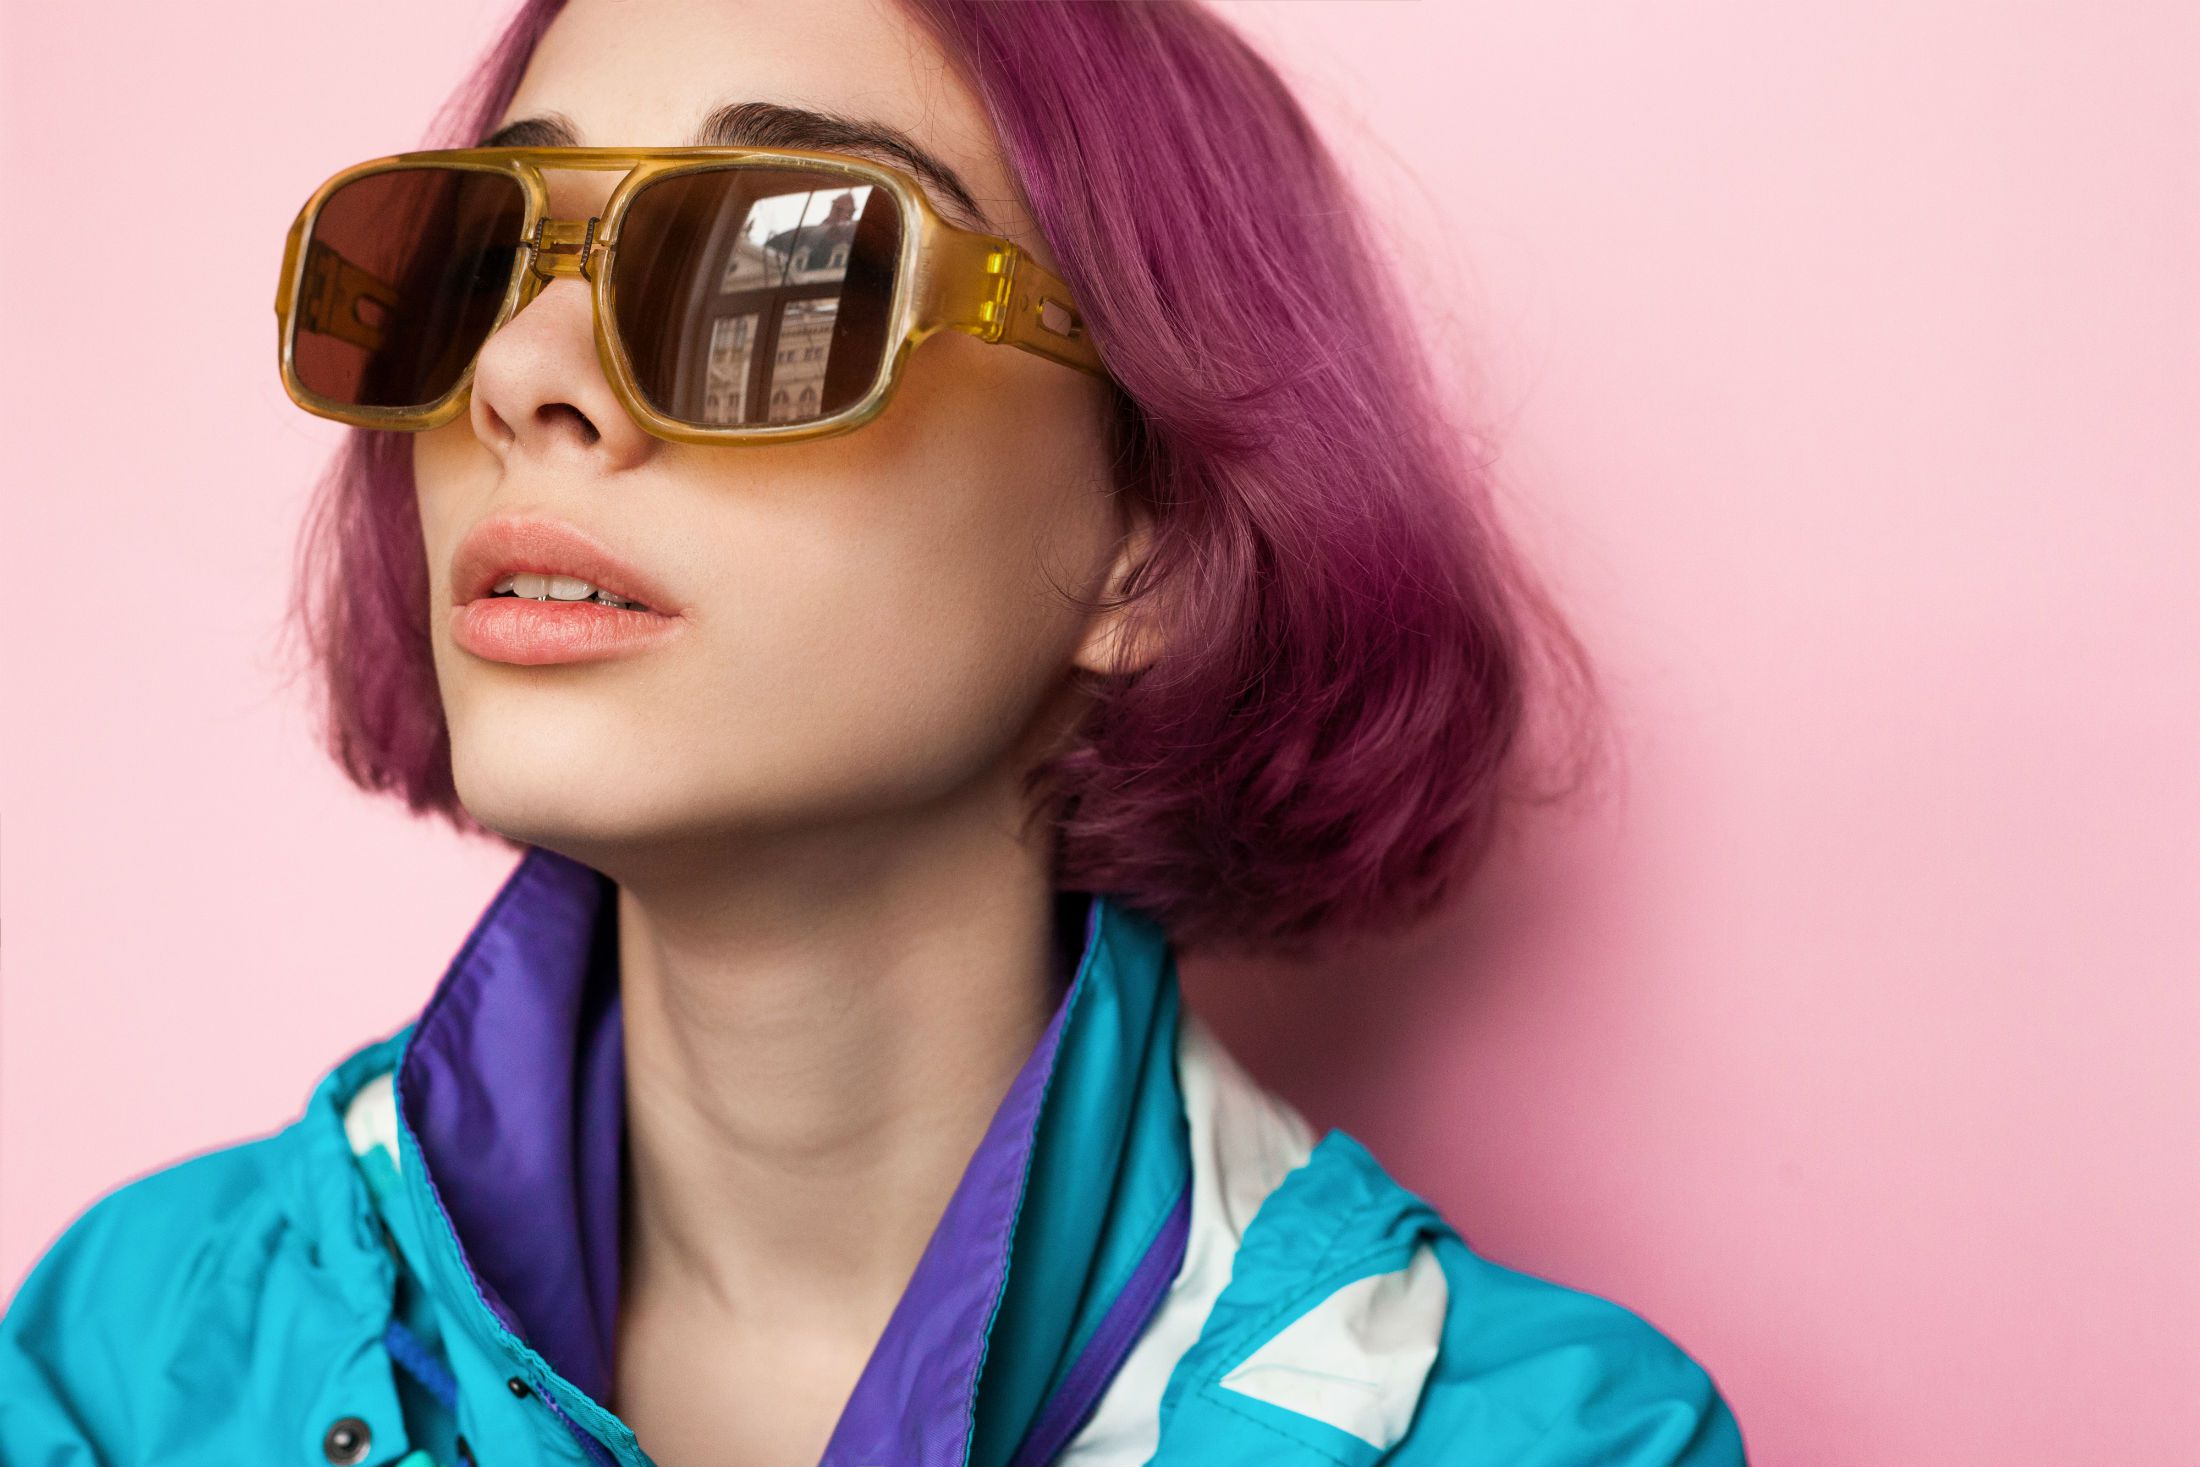 The trendy sunglasses youll want to buy in 2019